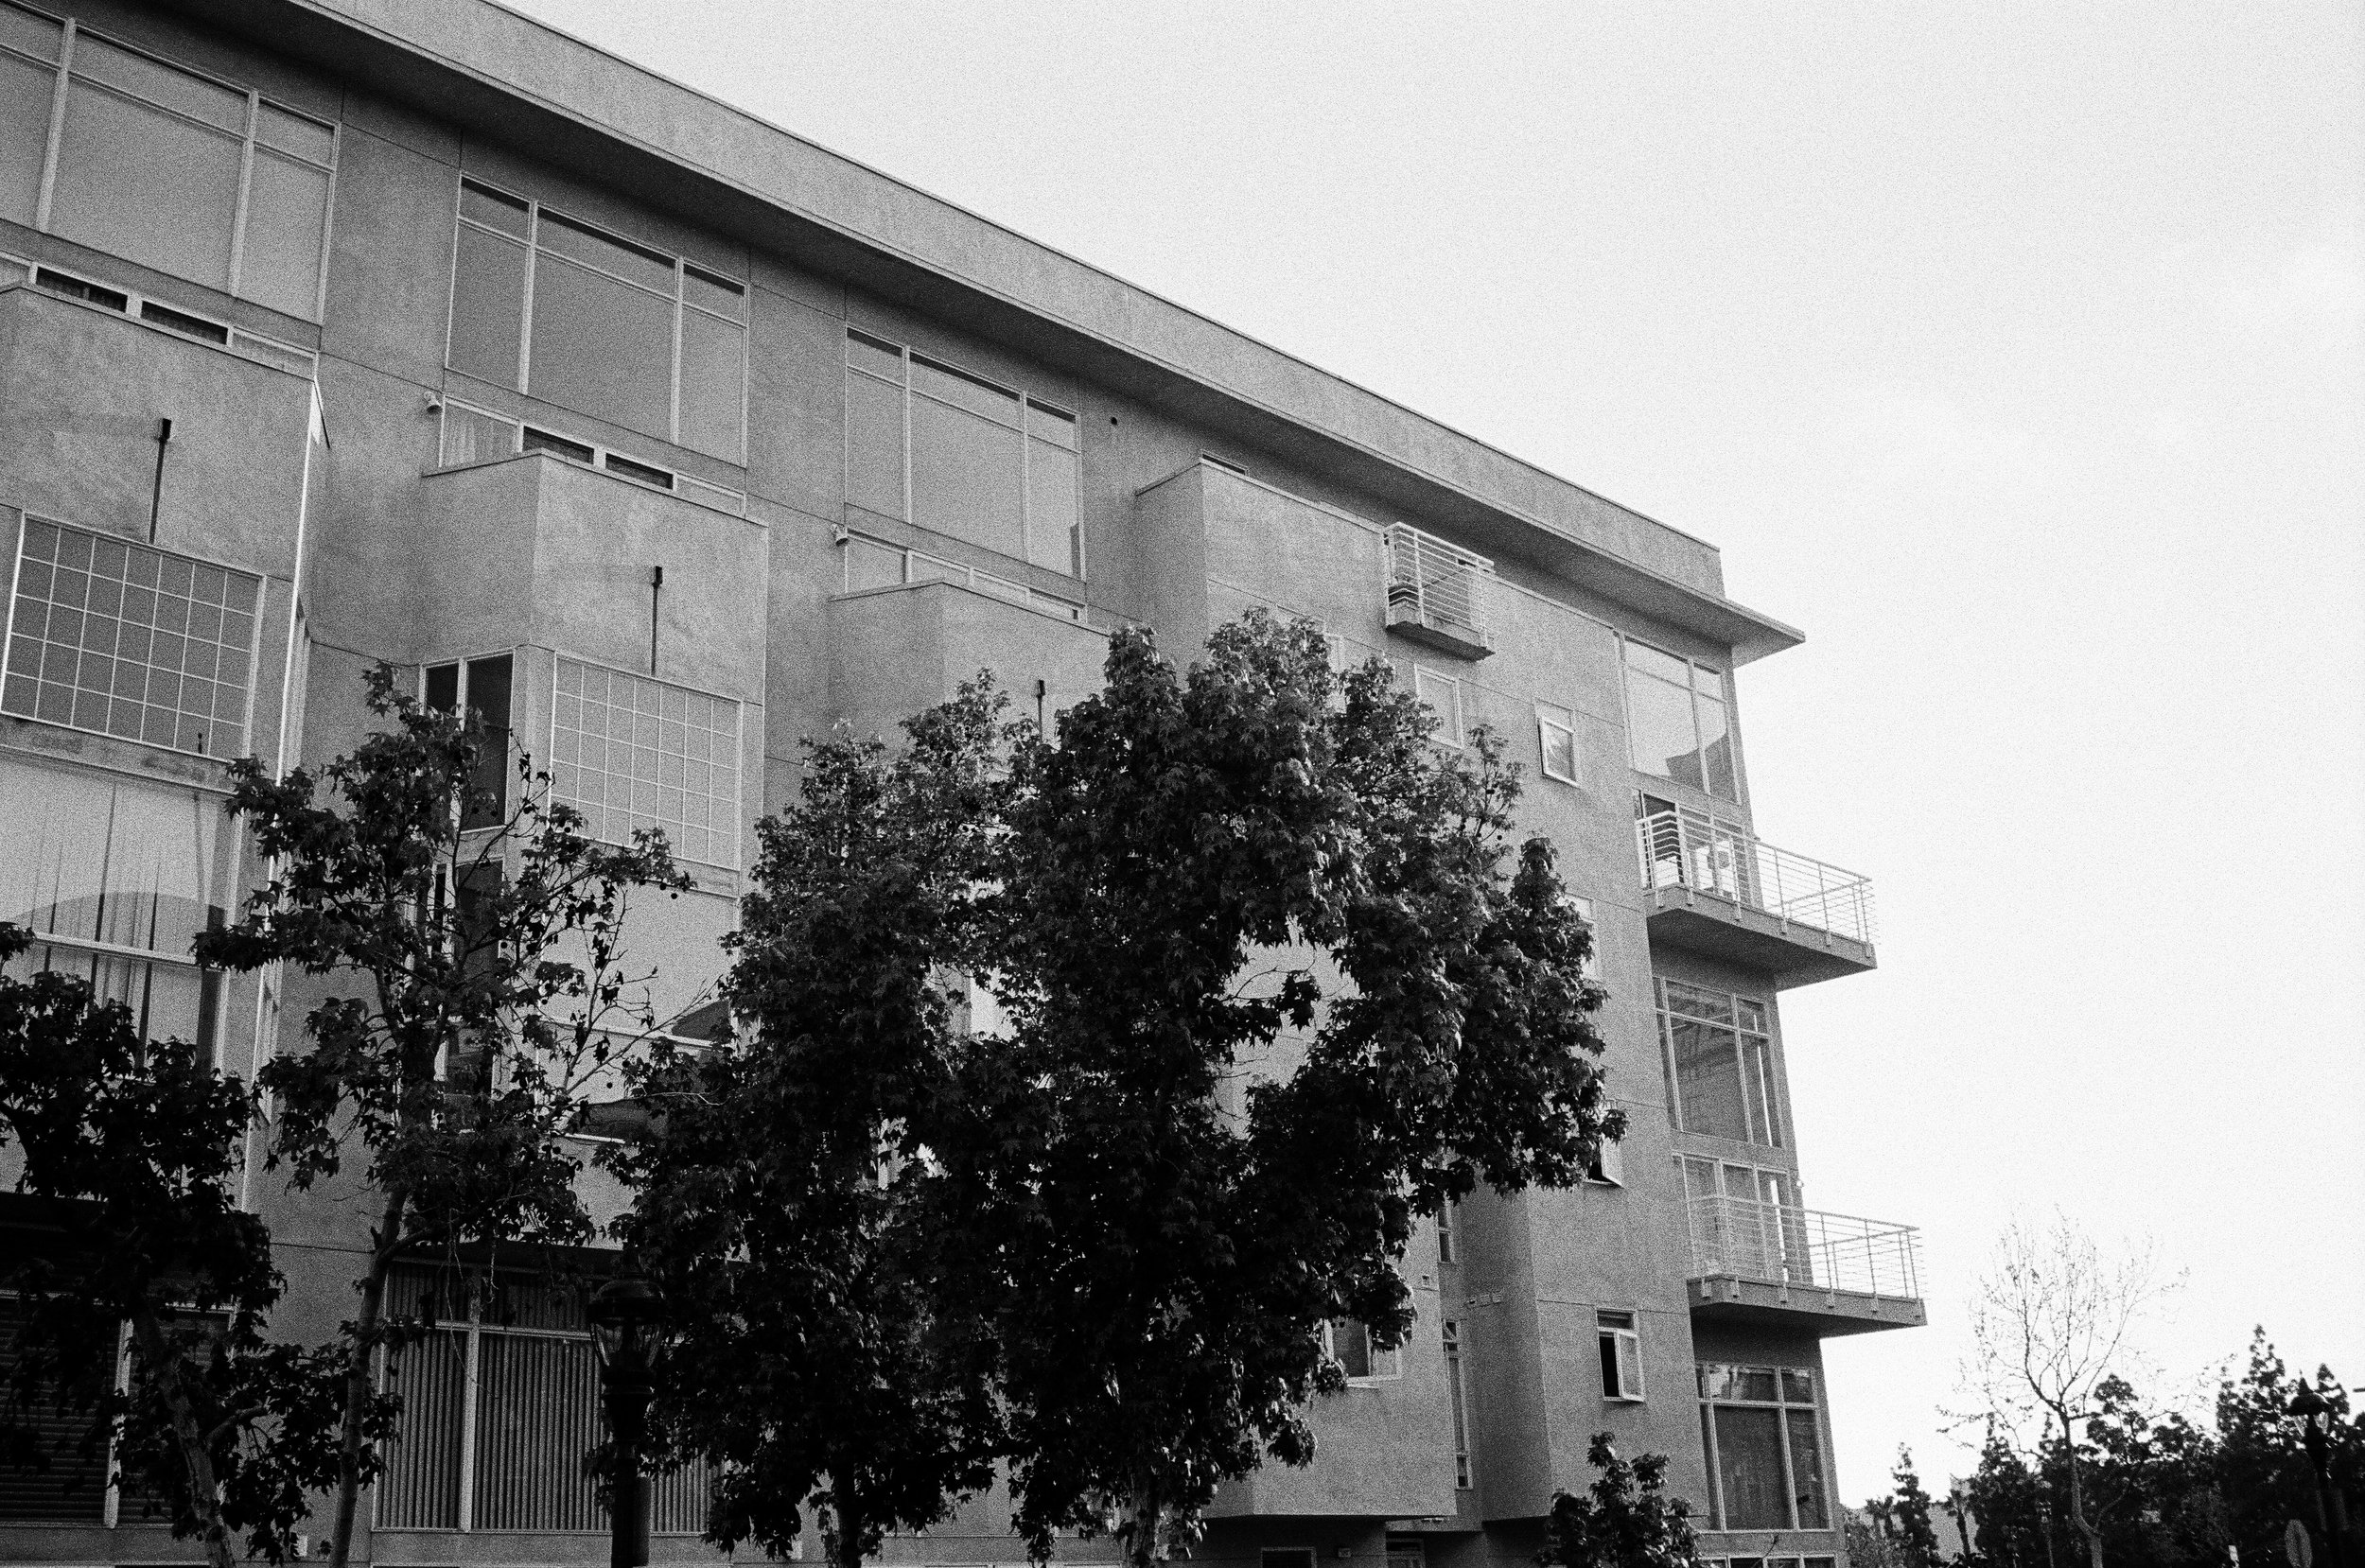 400tx_1669-resized-12.jpg